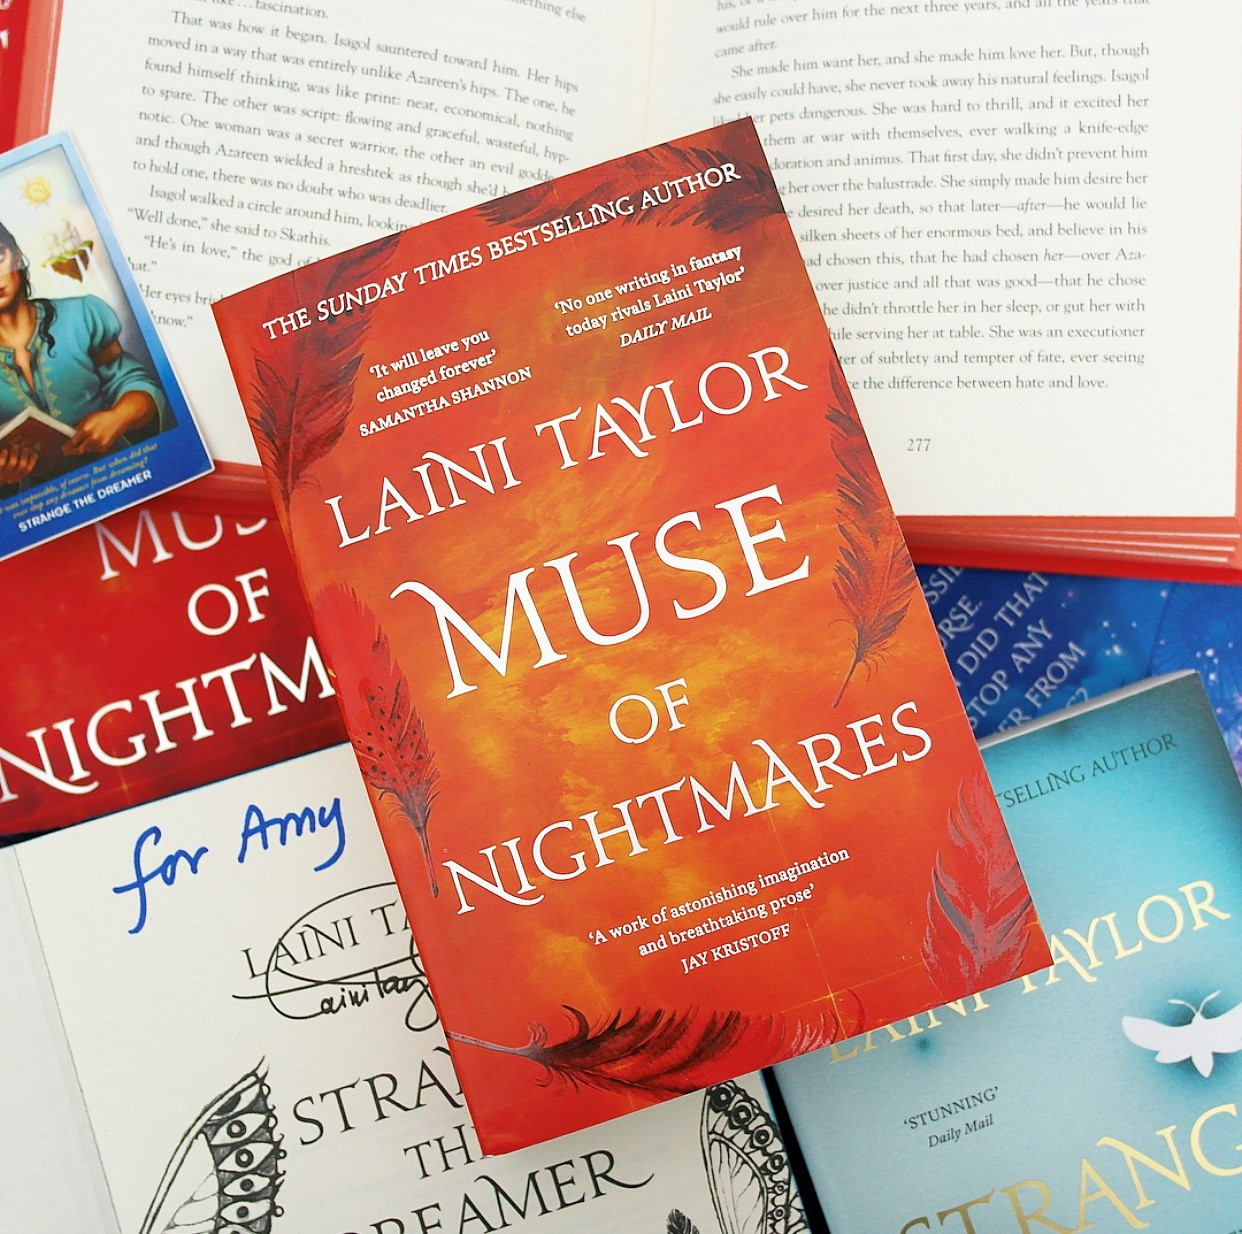 The paperback edition of Muse of Nightmares is lay on a collection of Laini Taylor books including the open Muse of Nightmares, the signed hardback edition of Strange the Dreamer and the paperback edition of Strange the Dreamer. There is also a sticker of Lazlo Strange.